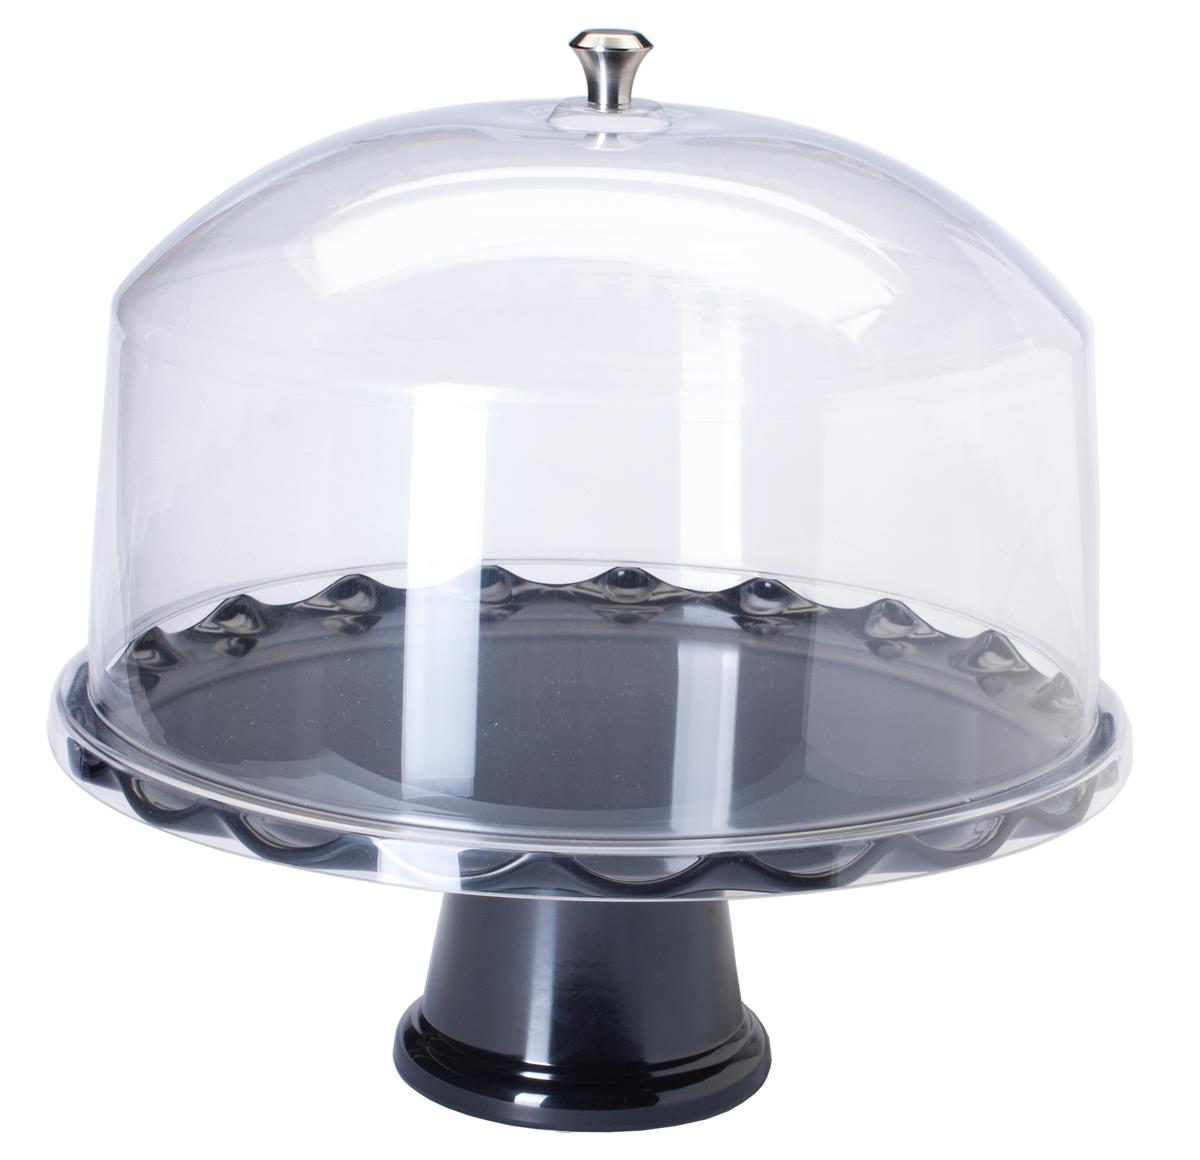 ... 11 black cake stand with dome detachable riser 15 black cake stand with dome detachable riser ...  sc 1 st  About Of Cake - Infomasif & 11 black cake stand with dome detachable riser - cake stands w domes ...